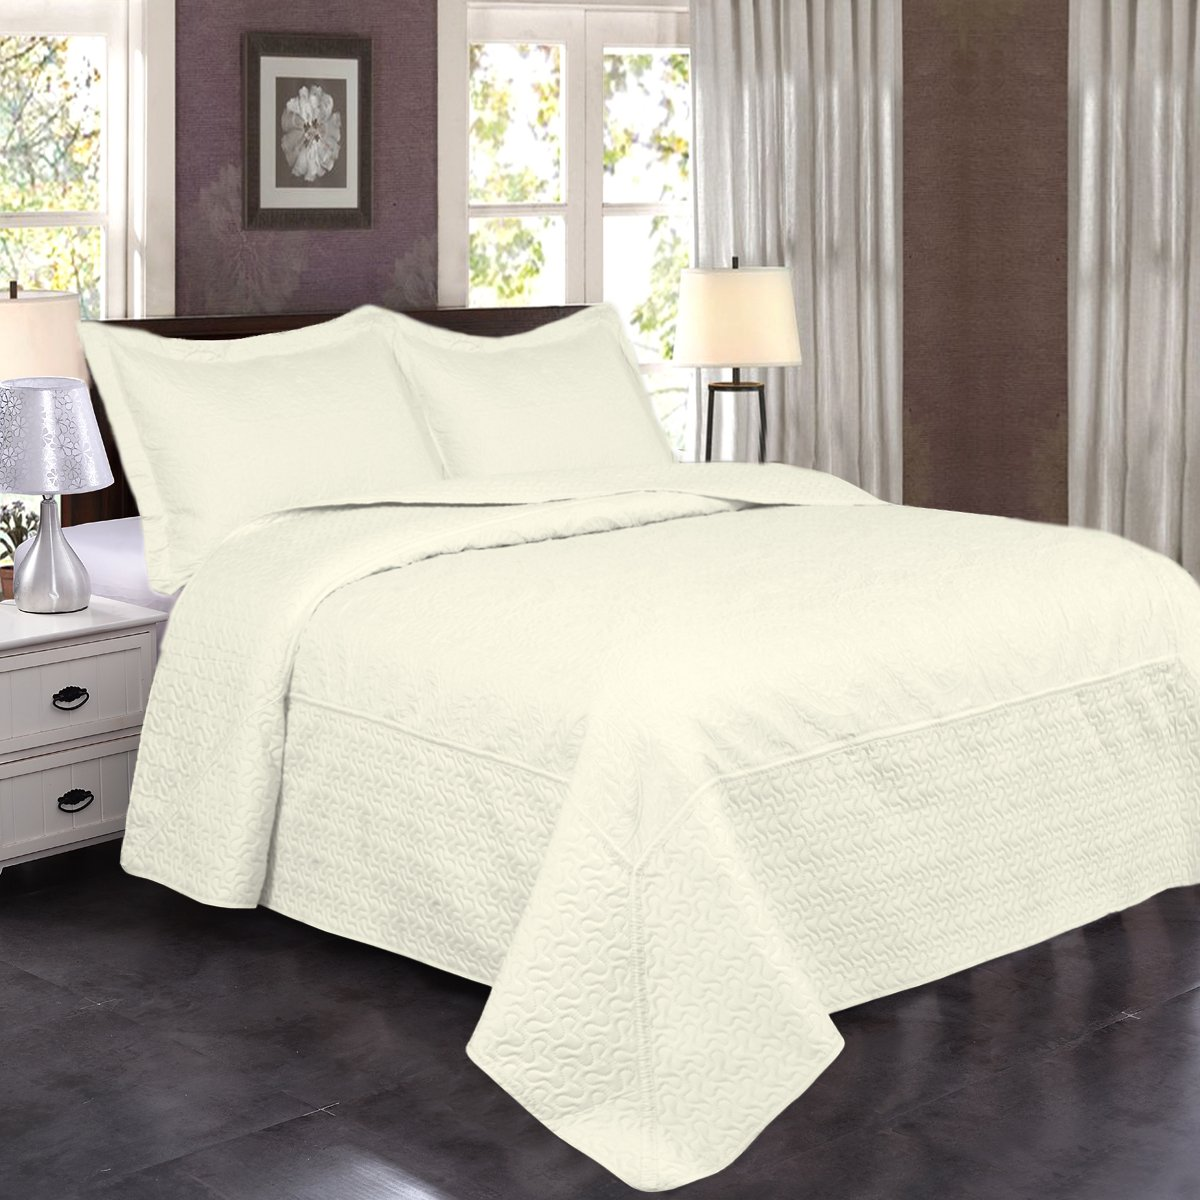 Jml Ultrasonic Quilt Set Queen Size - Brushed Microfiber - Soft and Breathable, Lightweight, Hypoallergenic and Dust Mite Resistant Solid Color Bedding Coverlet Set, White